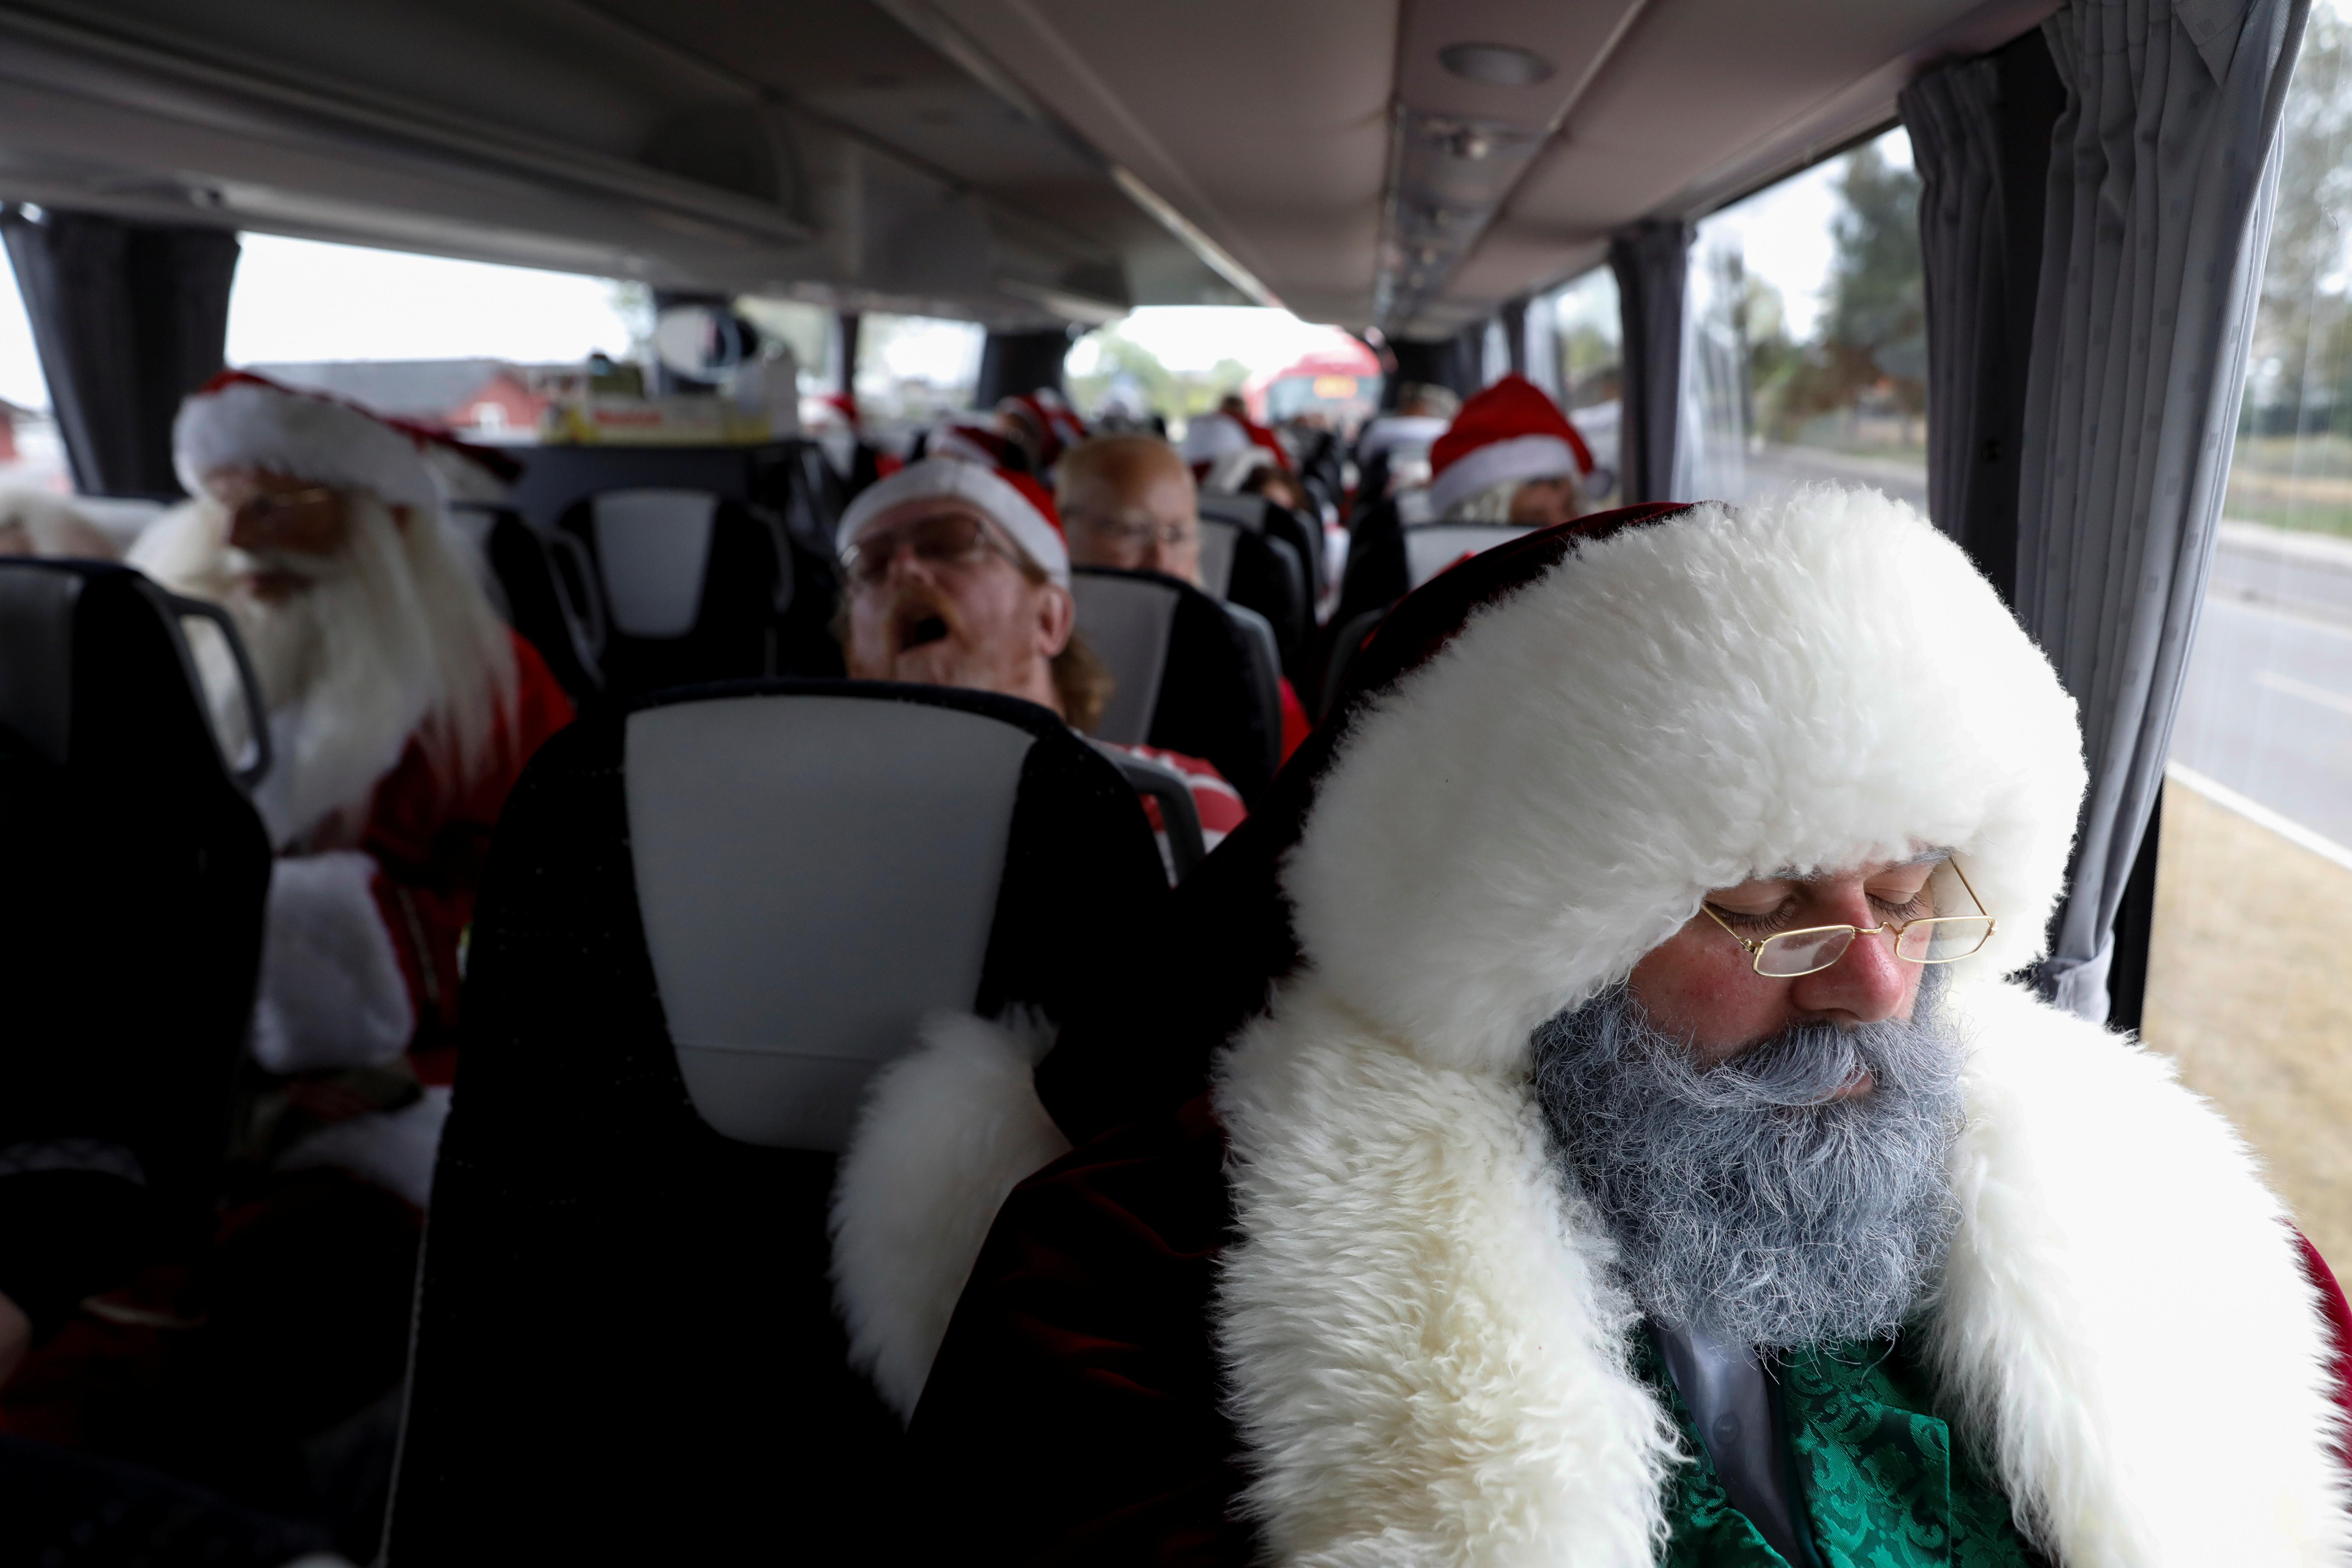 People dressed as Santa Claus rest while on a bus trip between events during the World Santa Claus Congress, an annual event held every summer in Copenhagen, Denmark, July 23, 2018.  Andrew Kelly